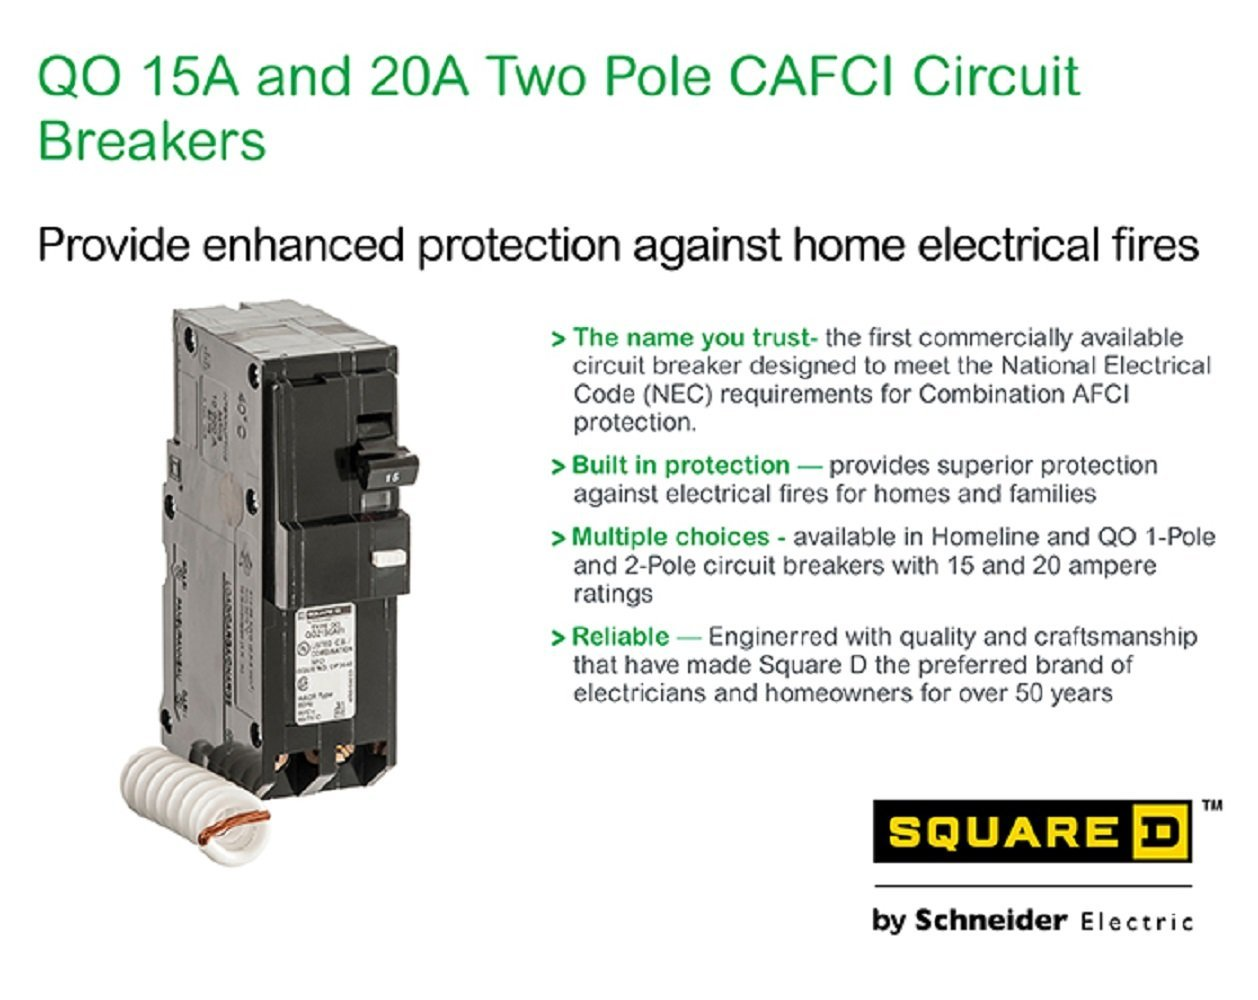 Square D By Schneider Electric Qo 20 Amp 35 In Two Pole Cafci Breaker What Should Be Used A Gfci Or Is 15 Circuit